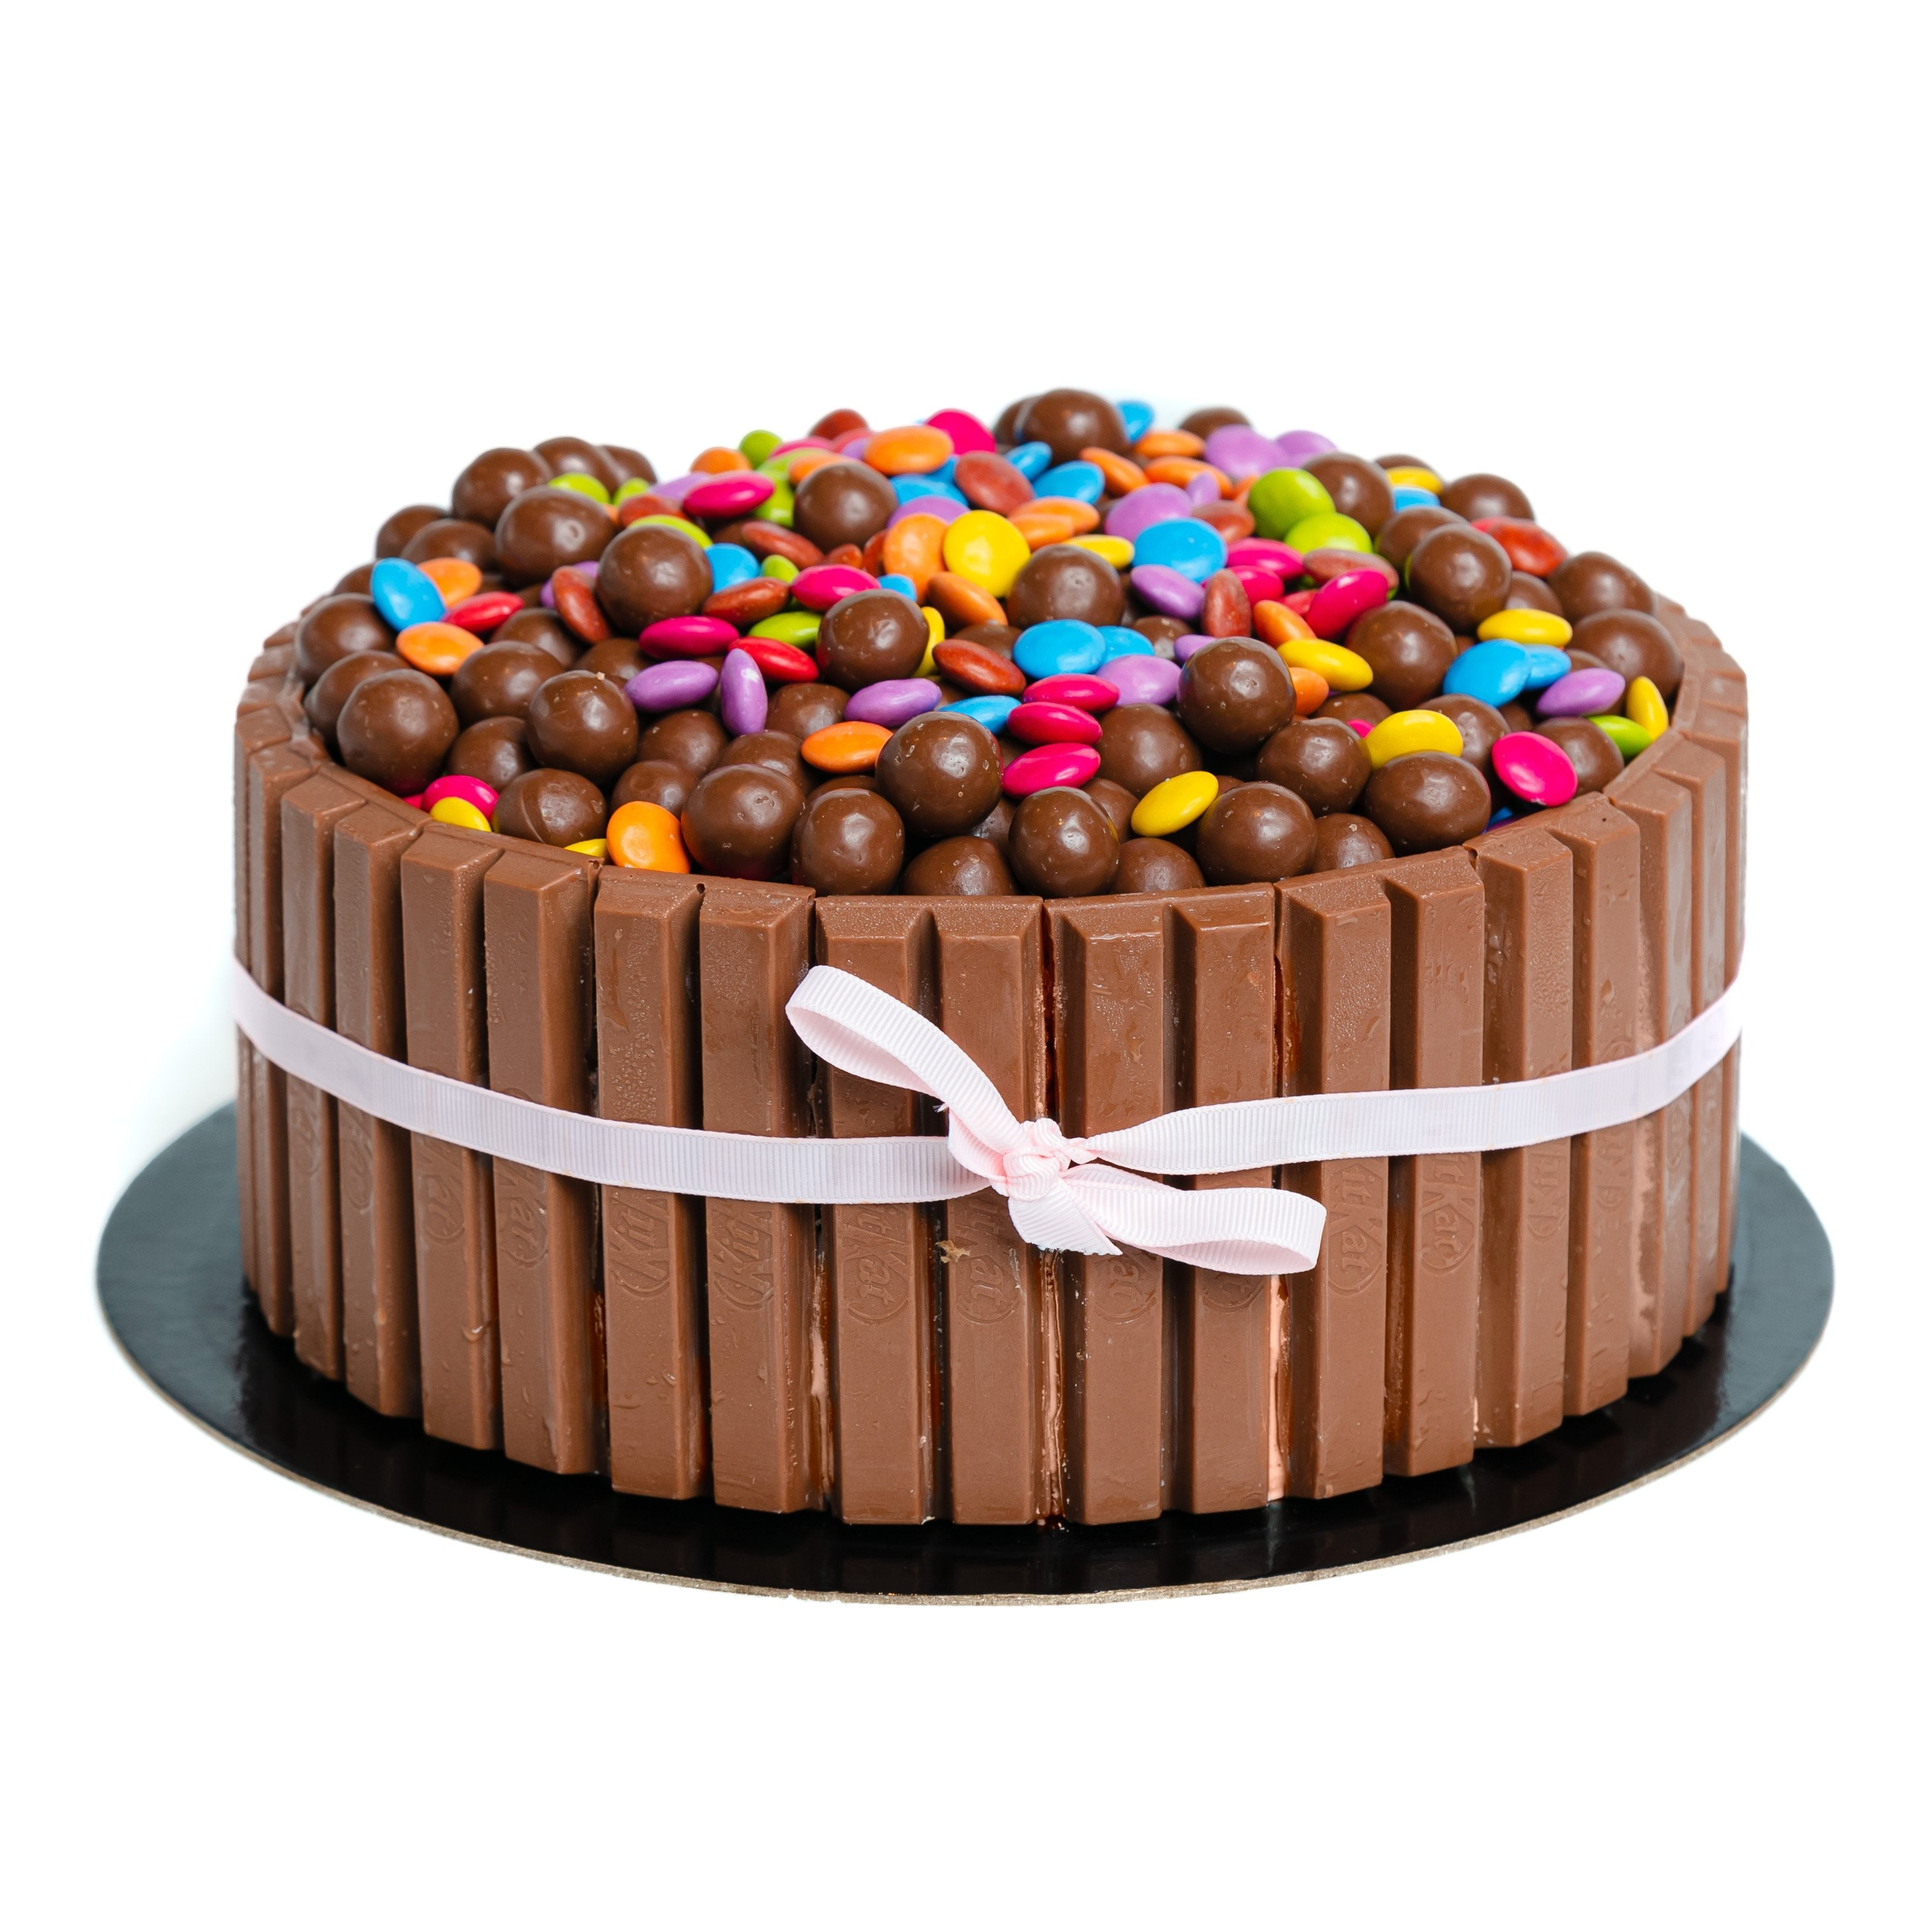 Kit Kat gelato cake with maltesers and smarties